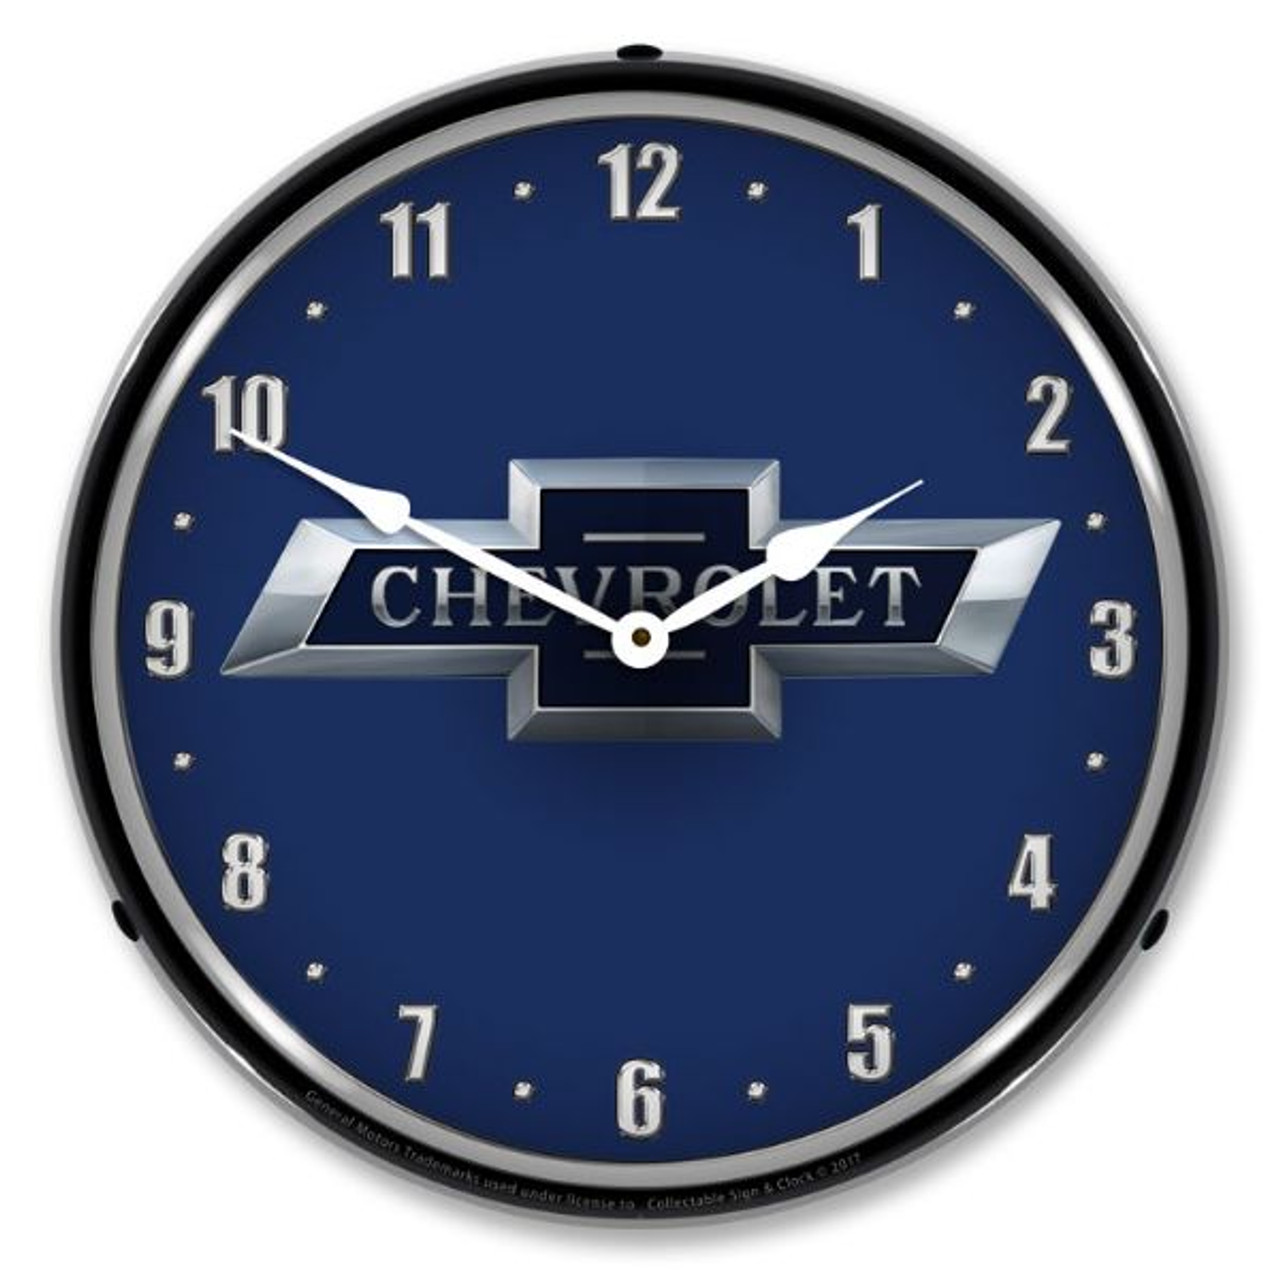 Chevrolet Bow tie 100th Anniversary Lighted Wall Clock 14 x 14 Inches